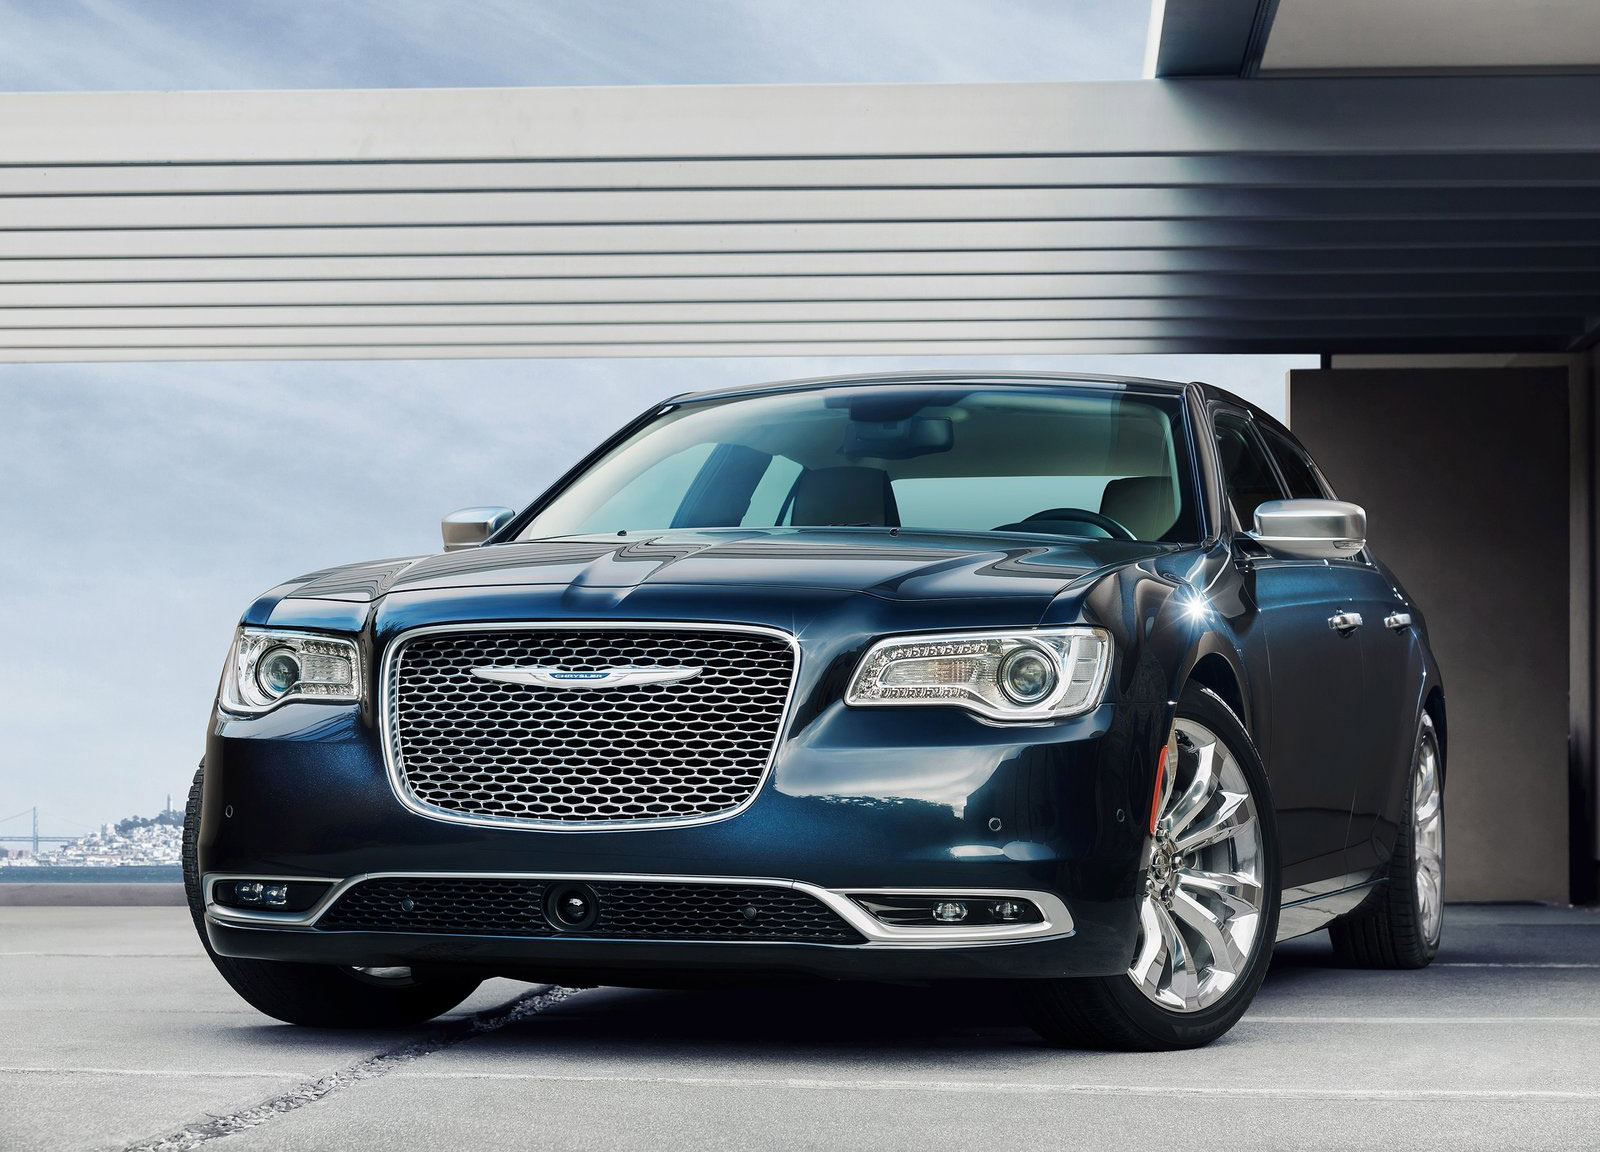 chrysler in trouble Read and download chrysler pacifica trouble codes free ebooks in pdf format - fafsa paper application 2009 2017 fahrenheit 451.